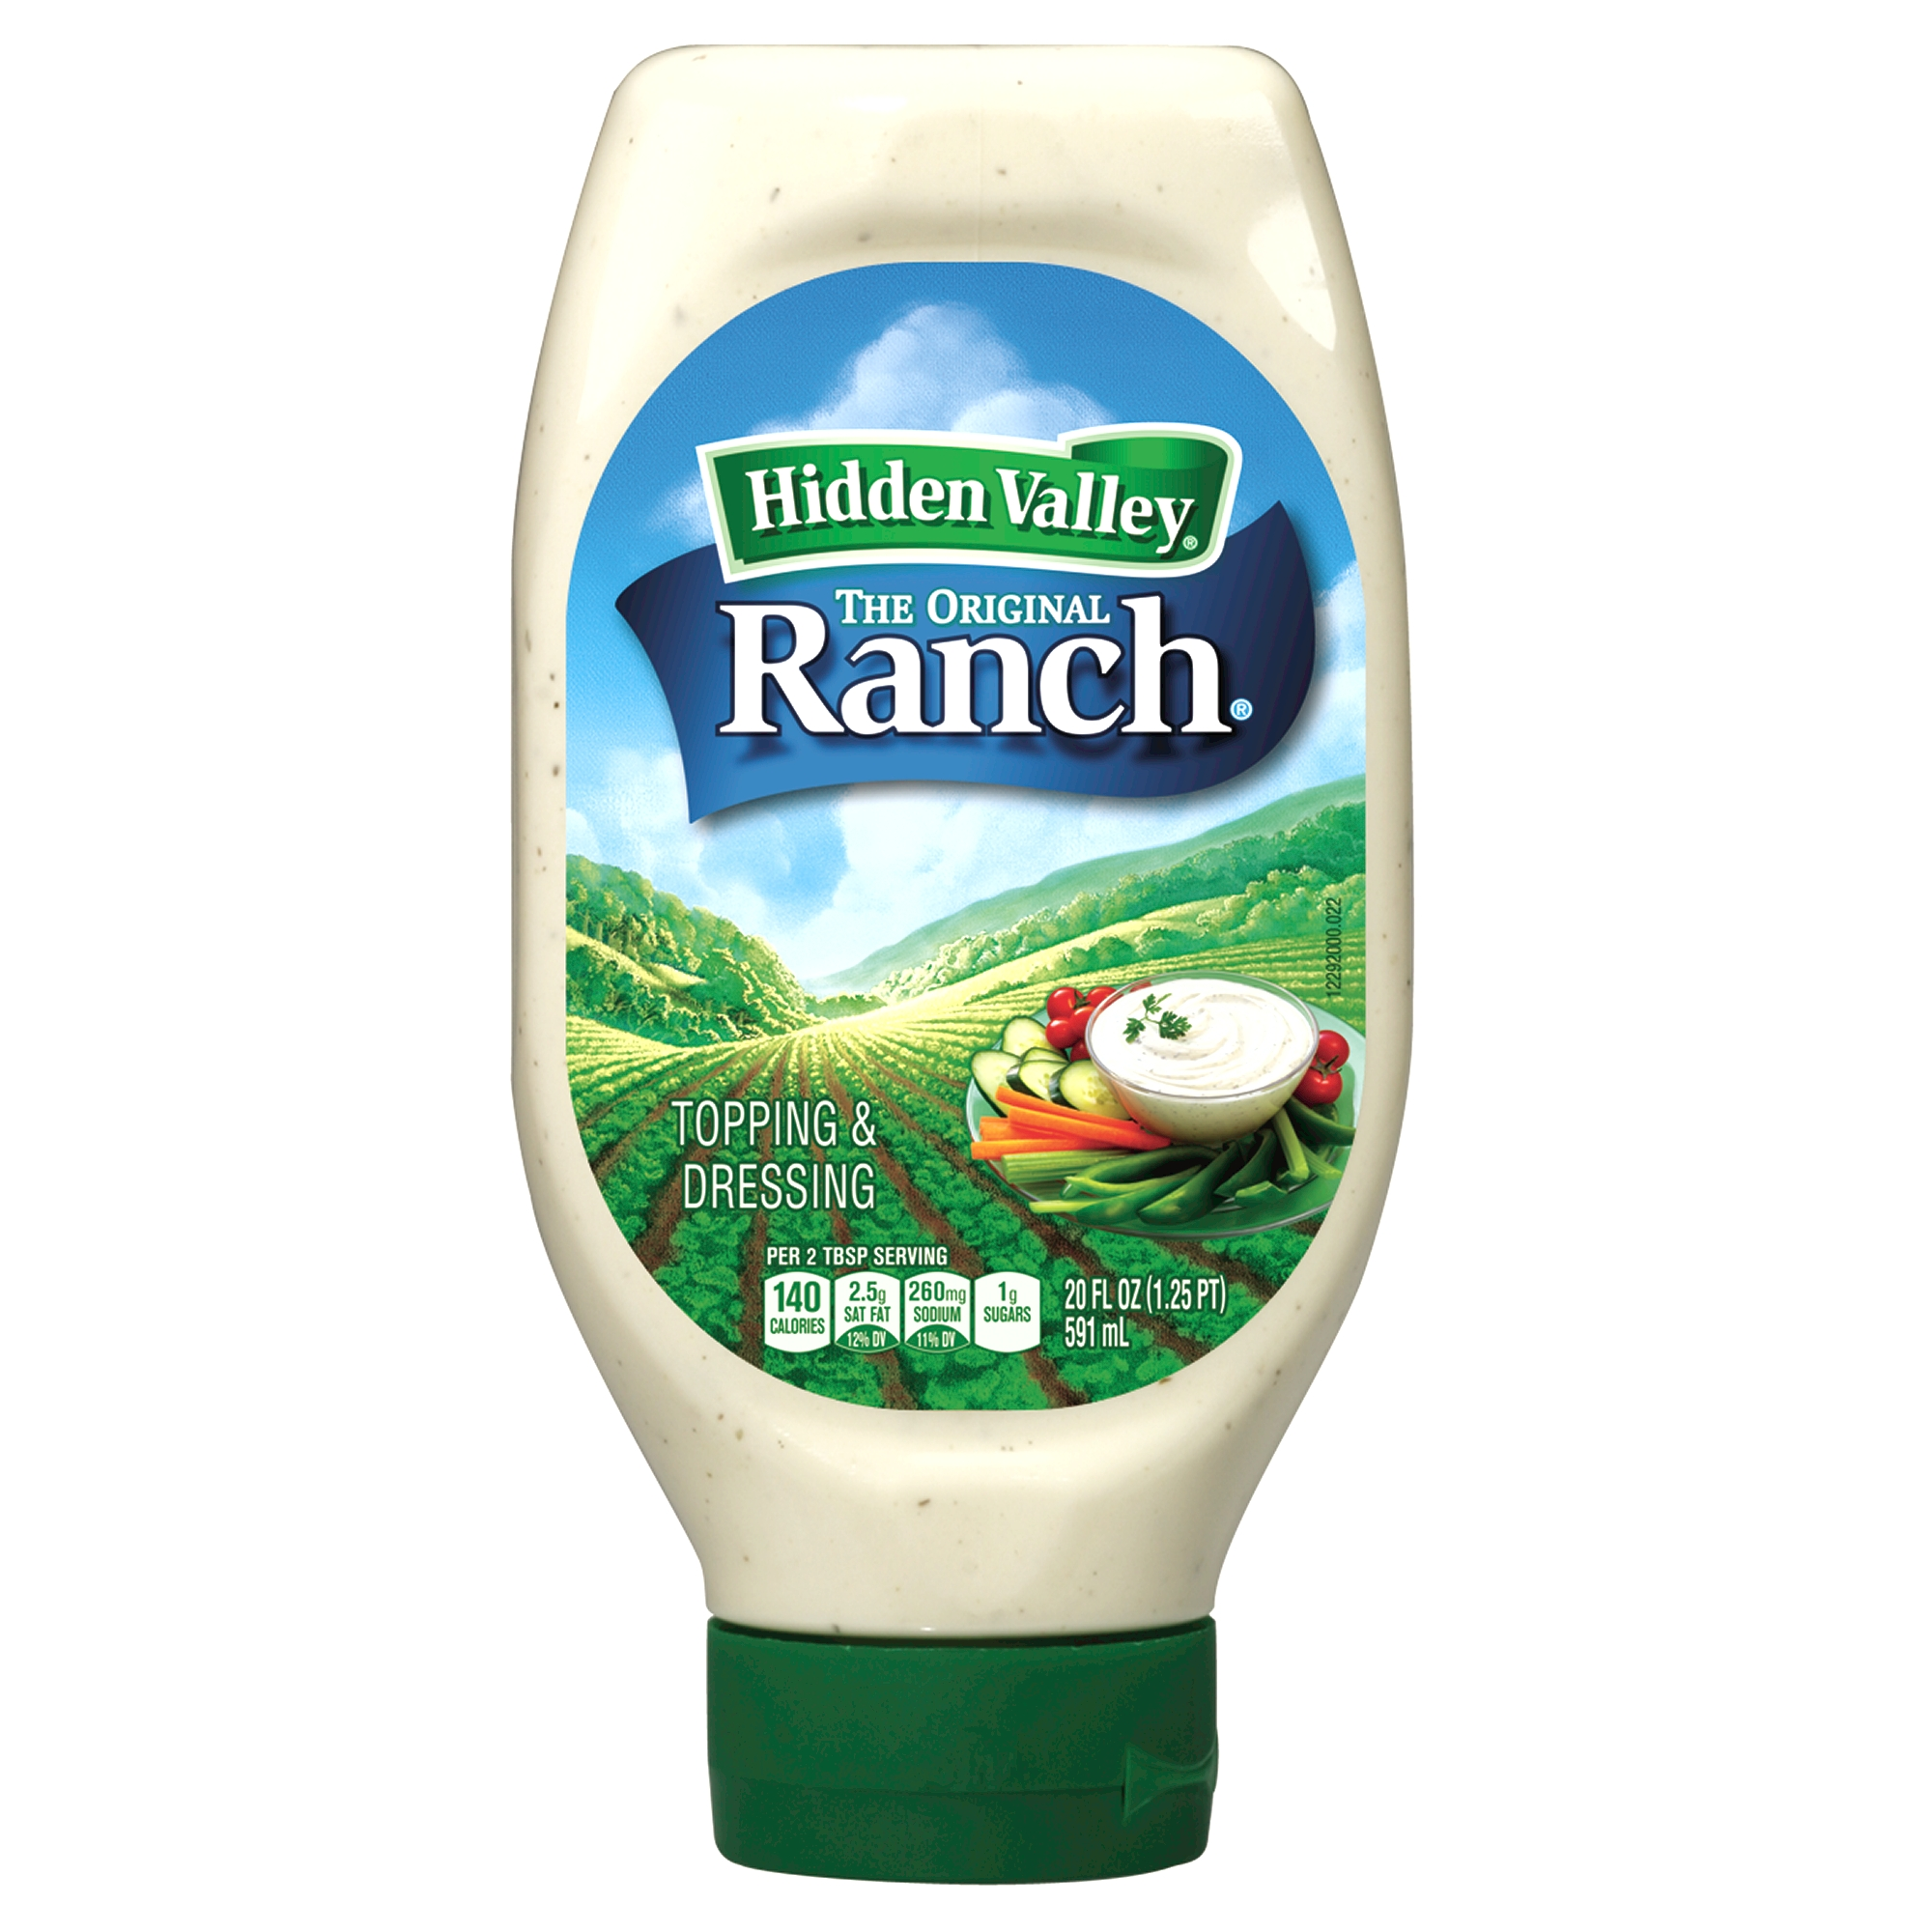 Hidden Valley Easy Squeeze Original Ranch Salad Dressing & Topping, Gluten Free - 20 oz Bottle